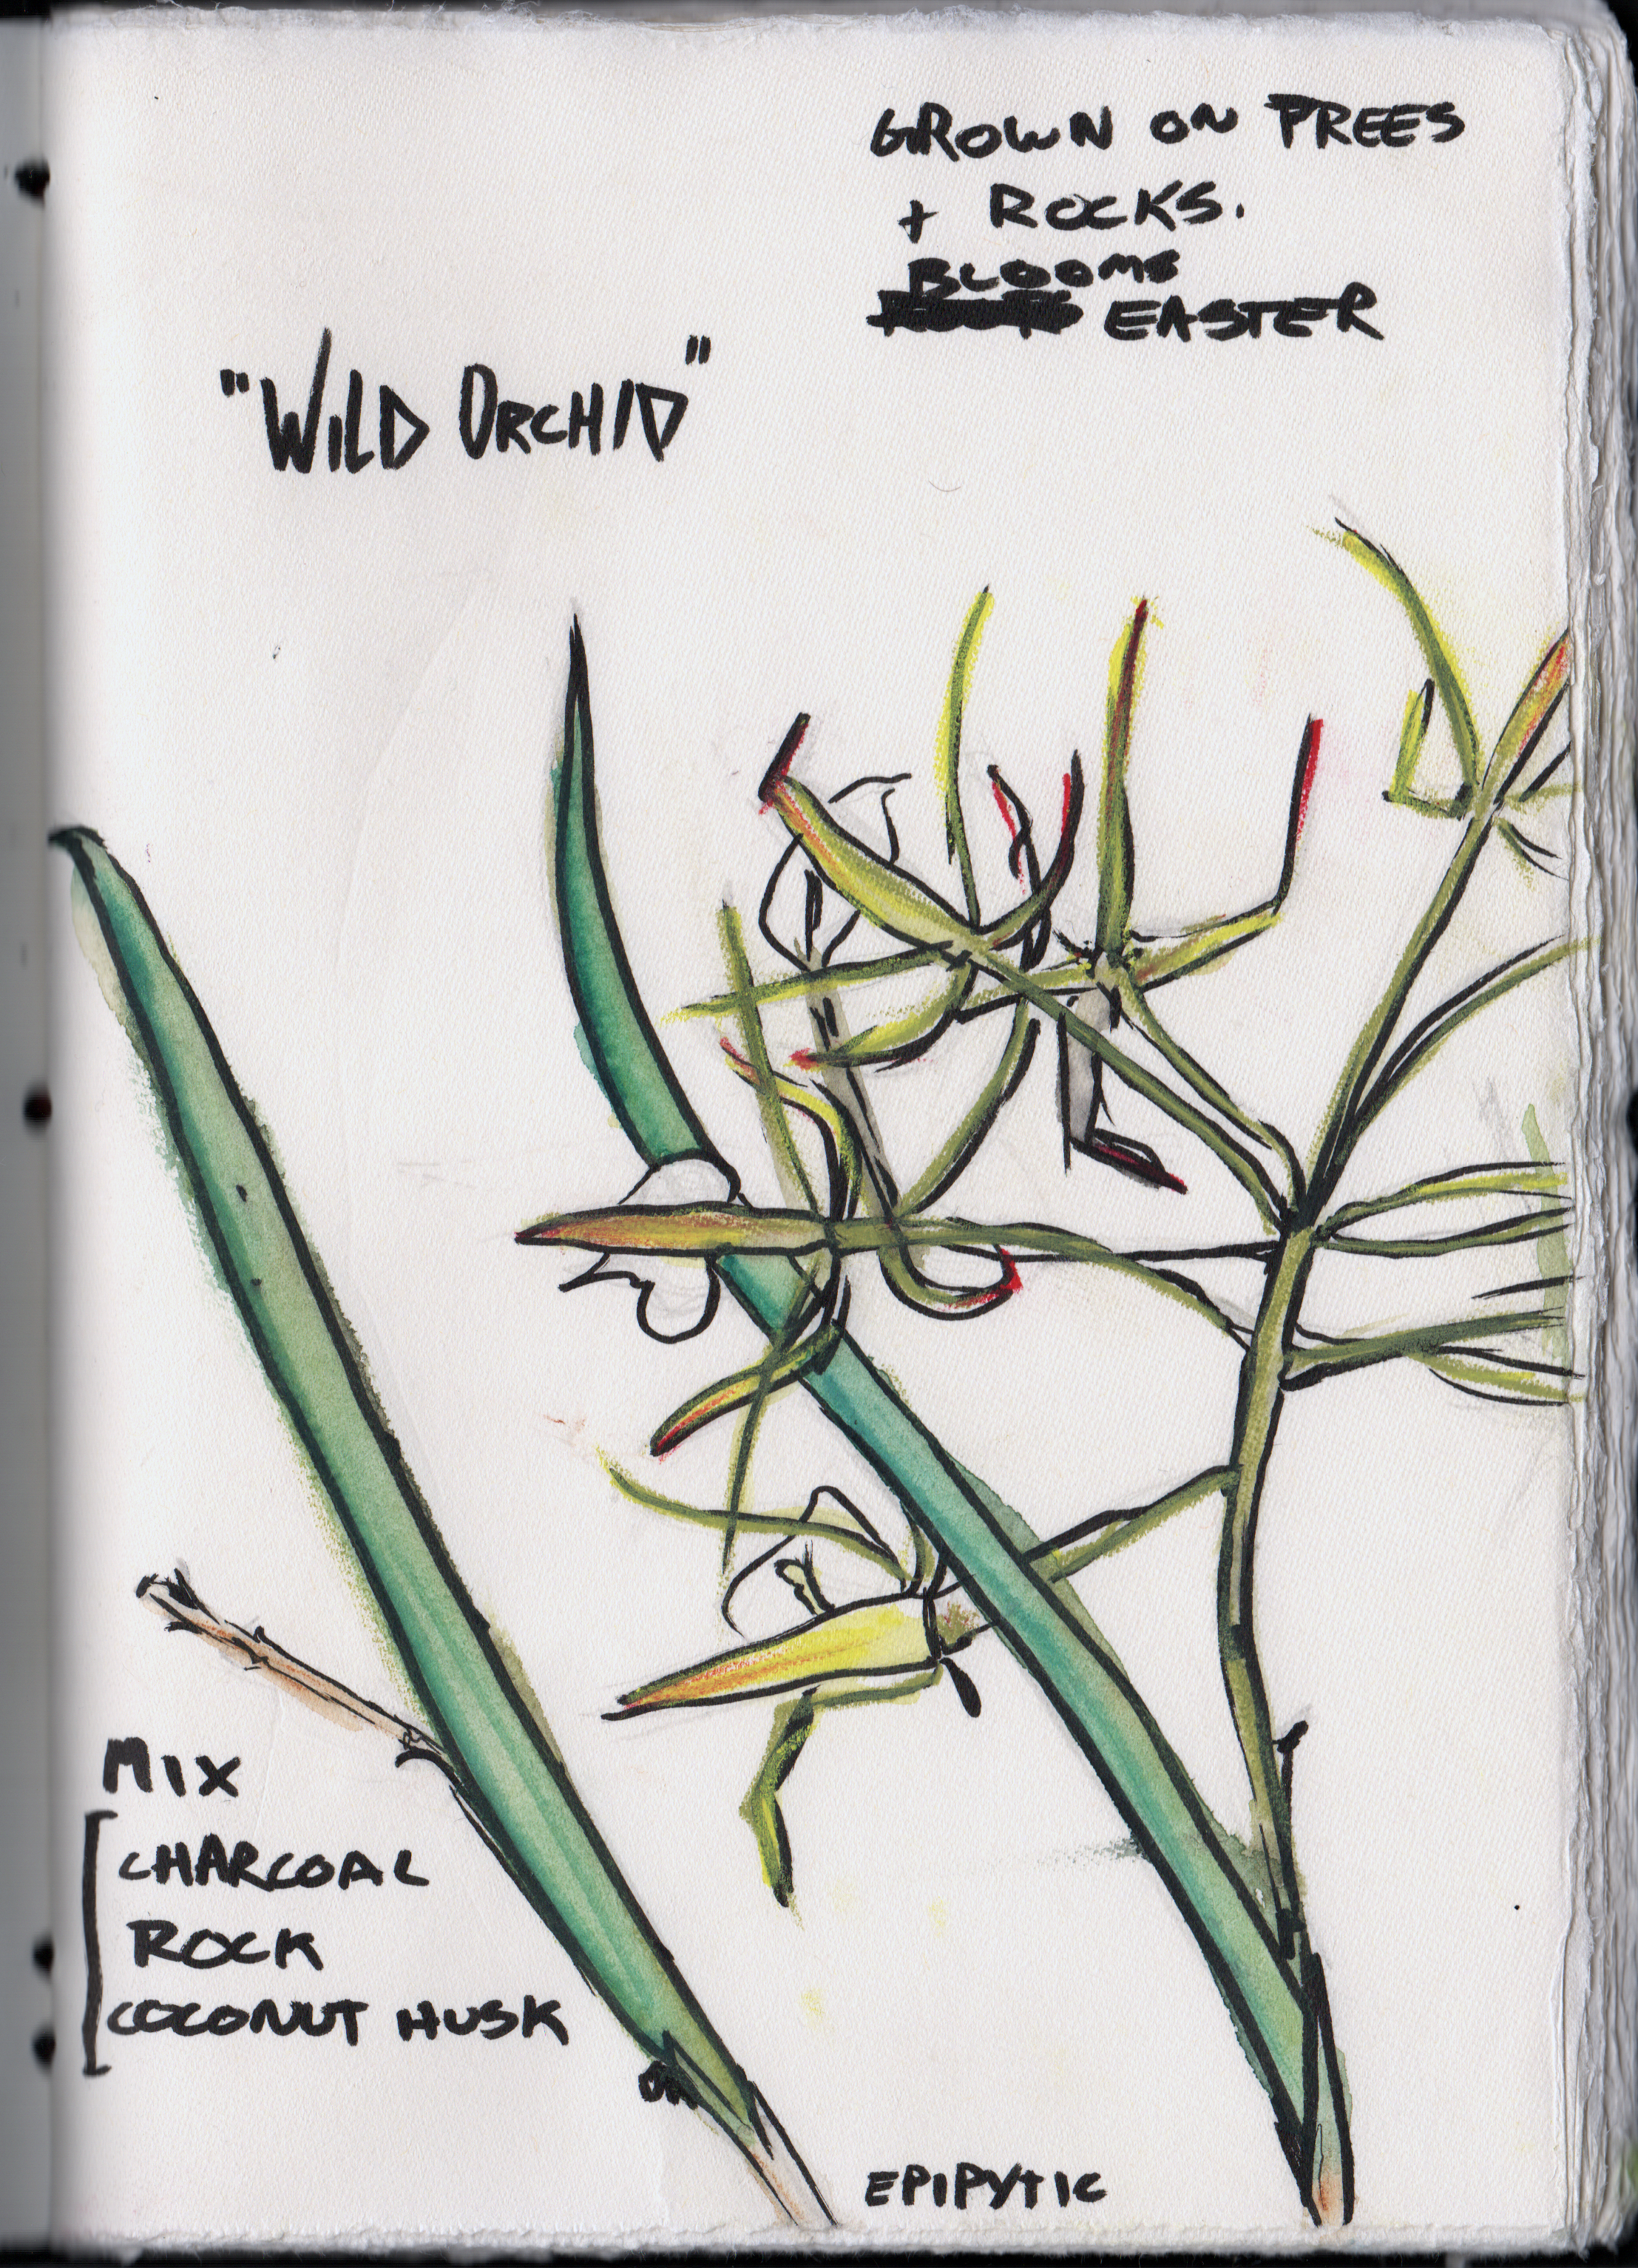 Wild orchid illustration by Jeremy using watercolor and pen.